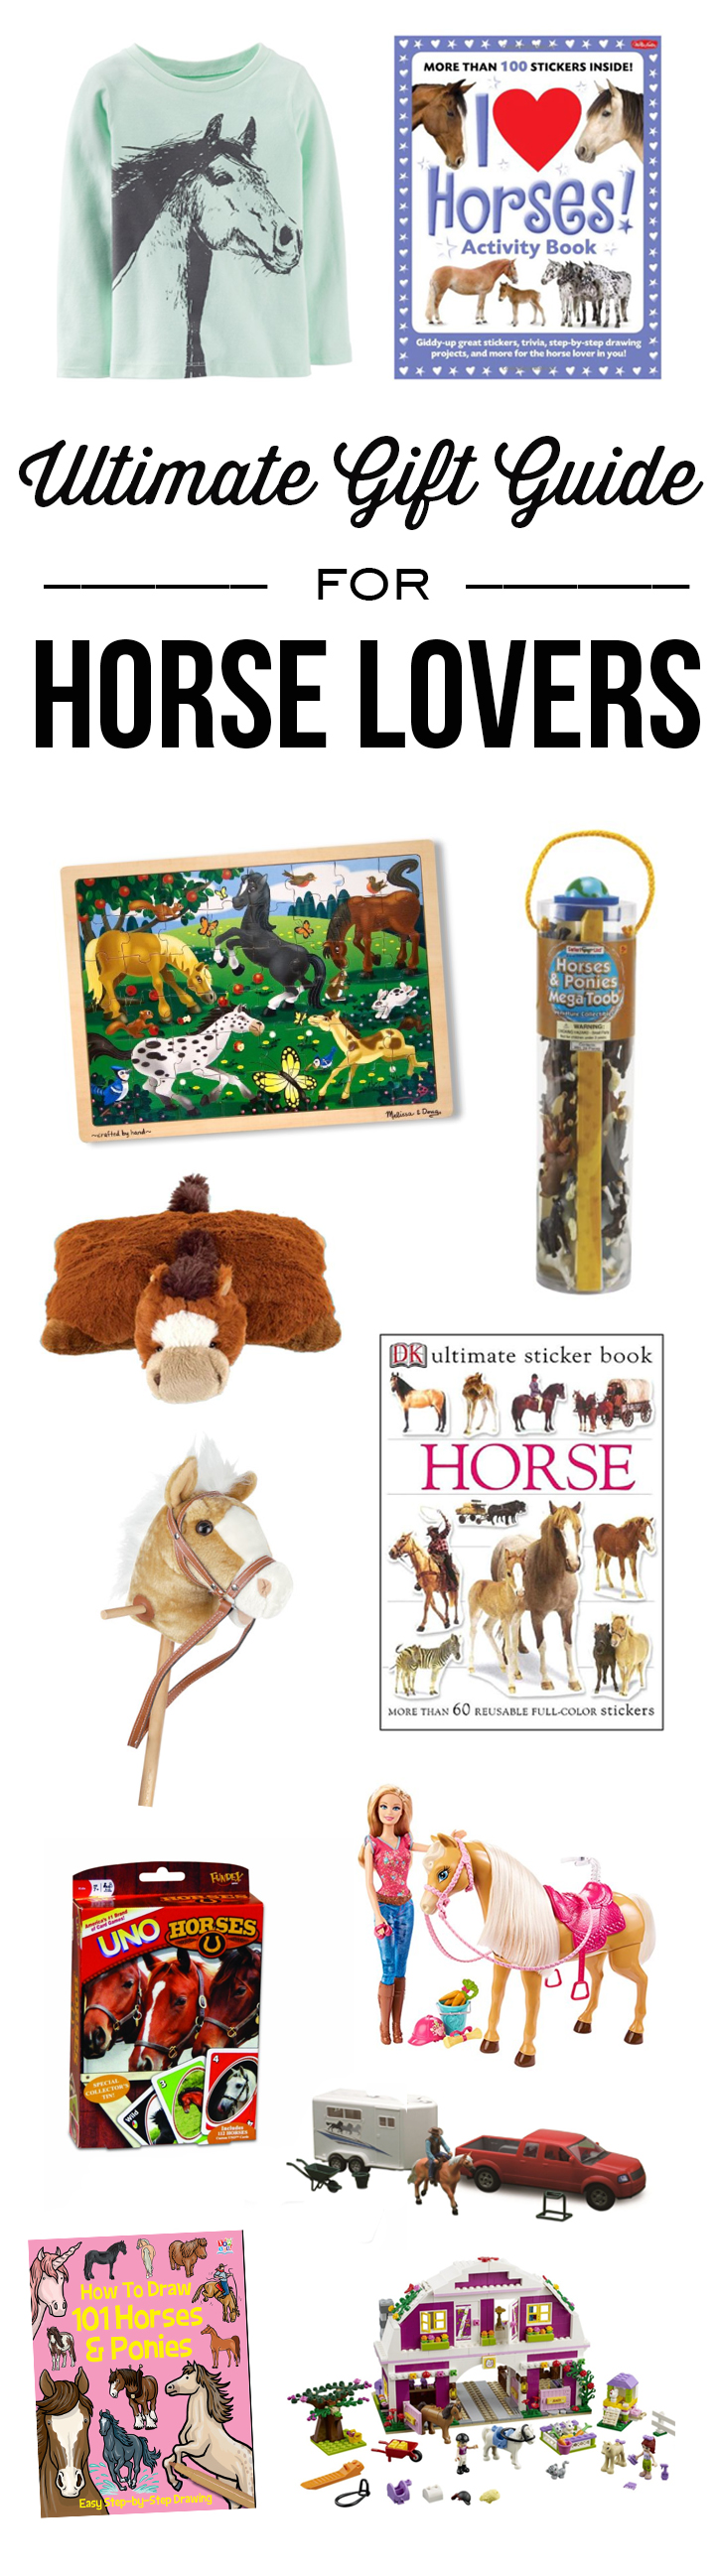 horse-lovers-gift-guide